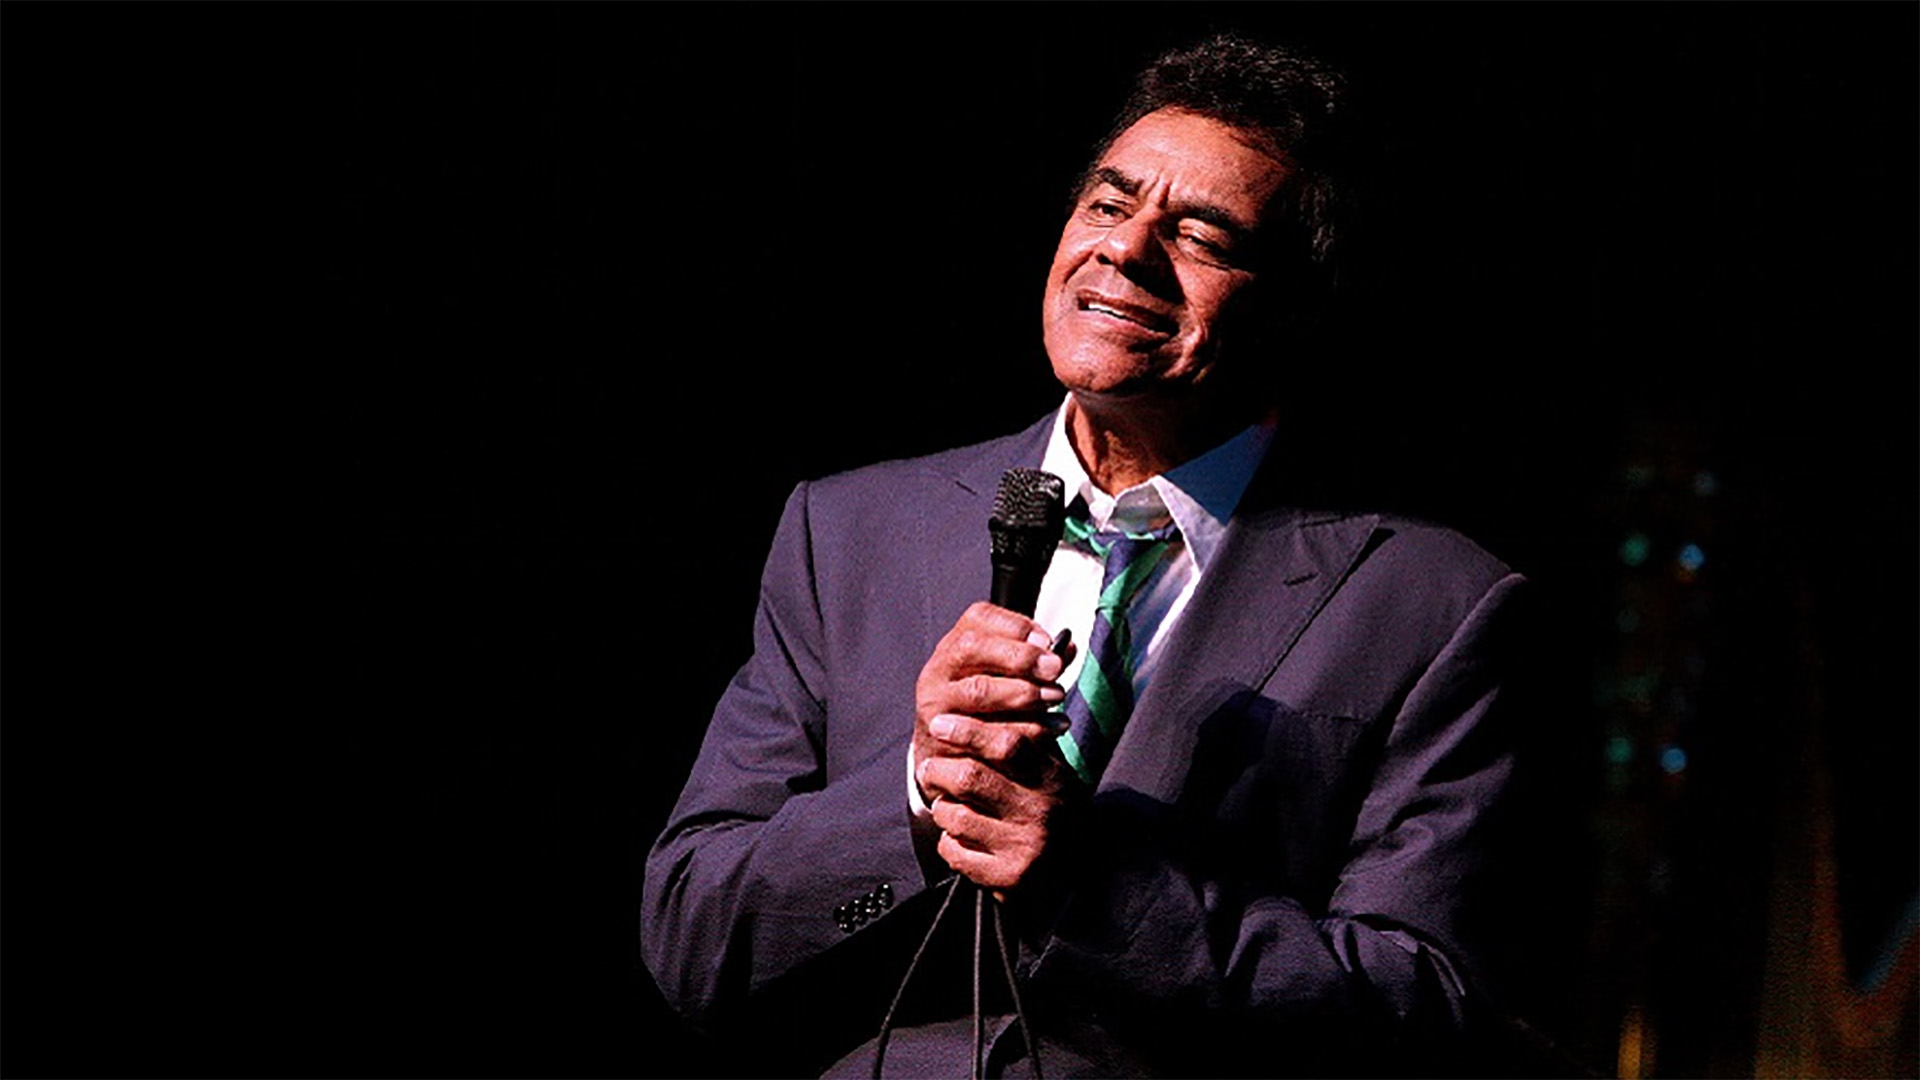 Johnny Mathis - Wonderful Wonderful (My Music Presents)